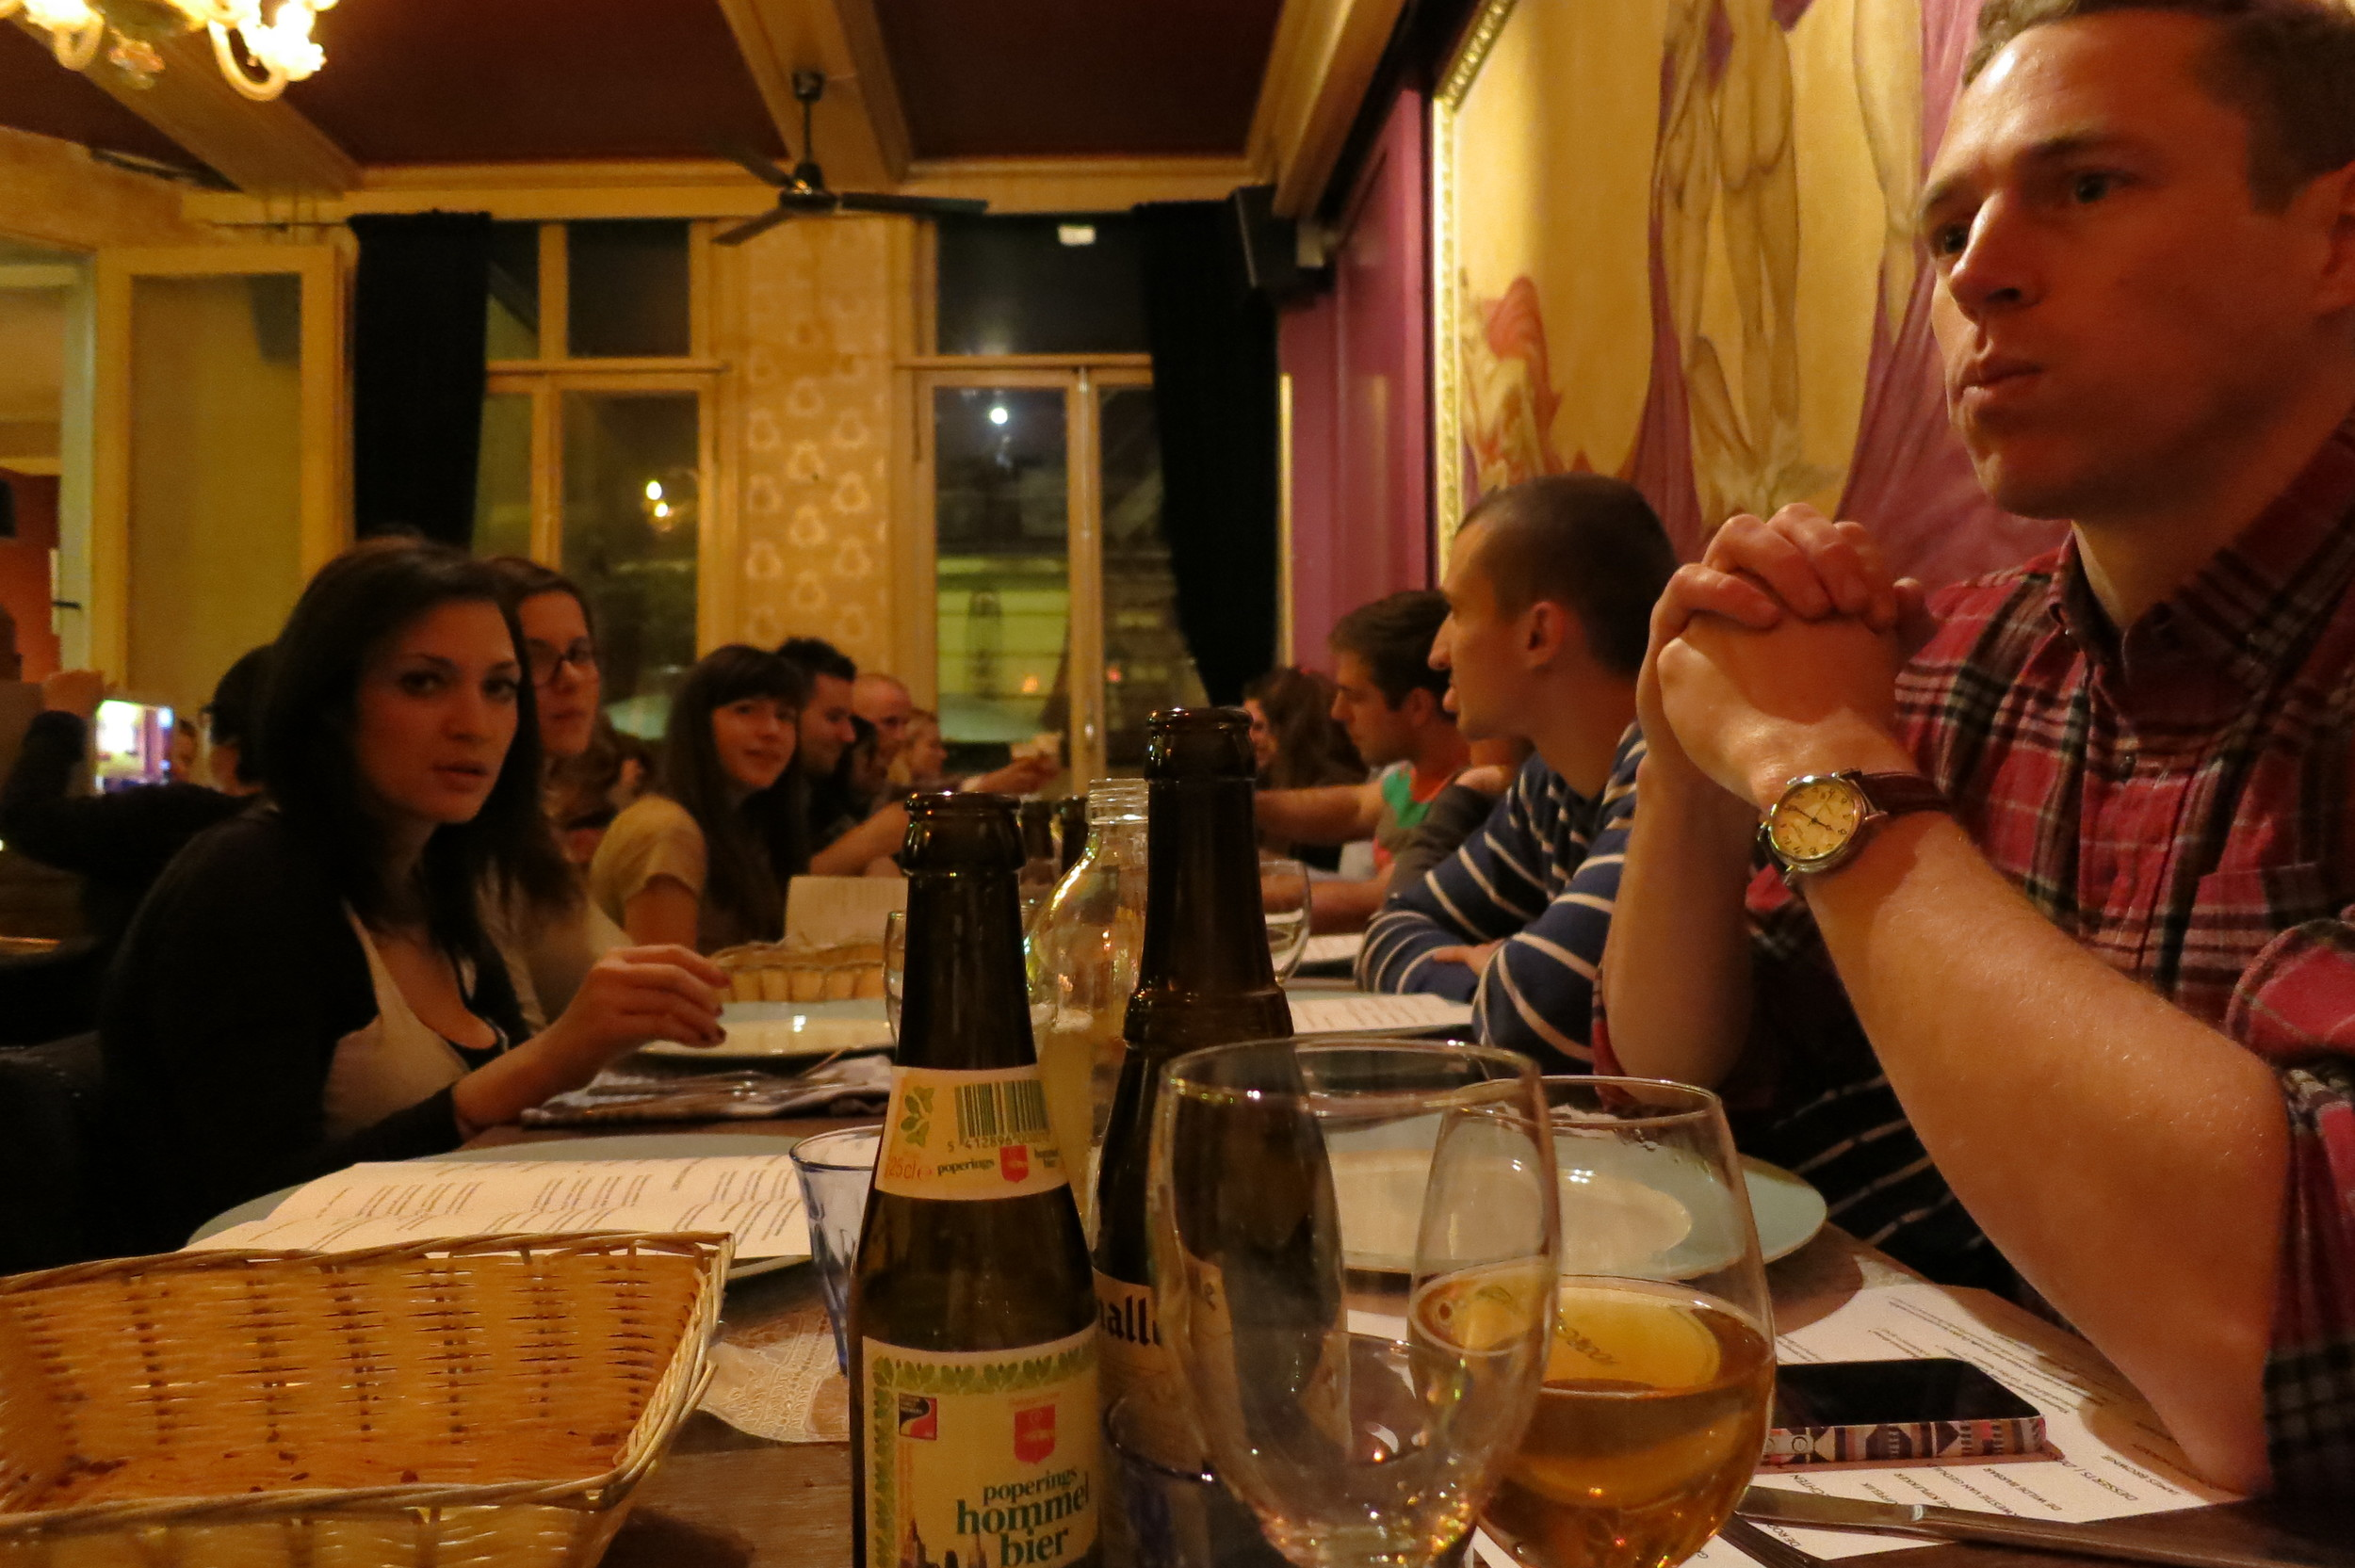 A big unofficial group dinner at a Belgian restaurant called Lieve. (Amsterdam, The Netherlands.)